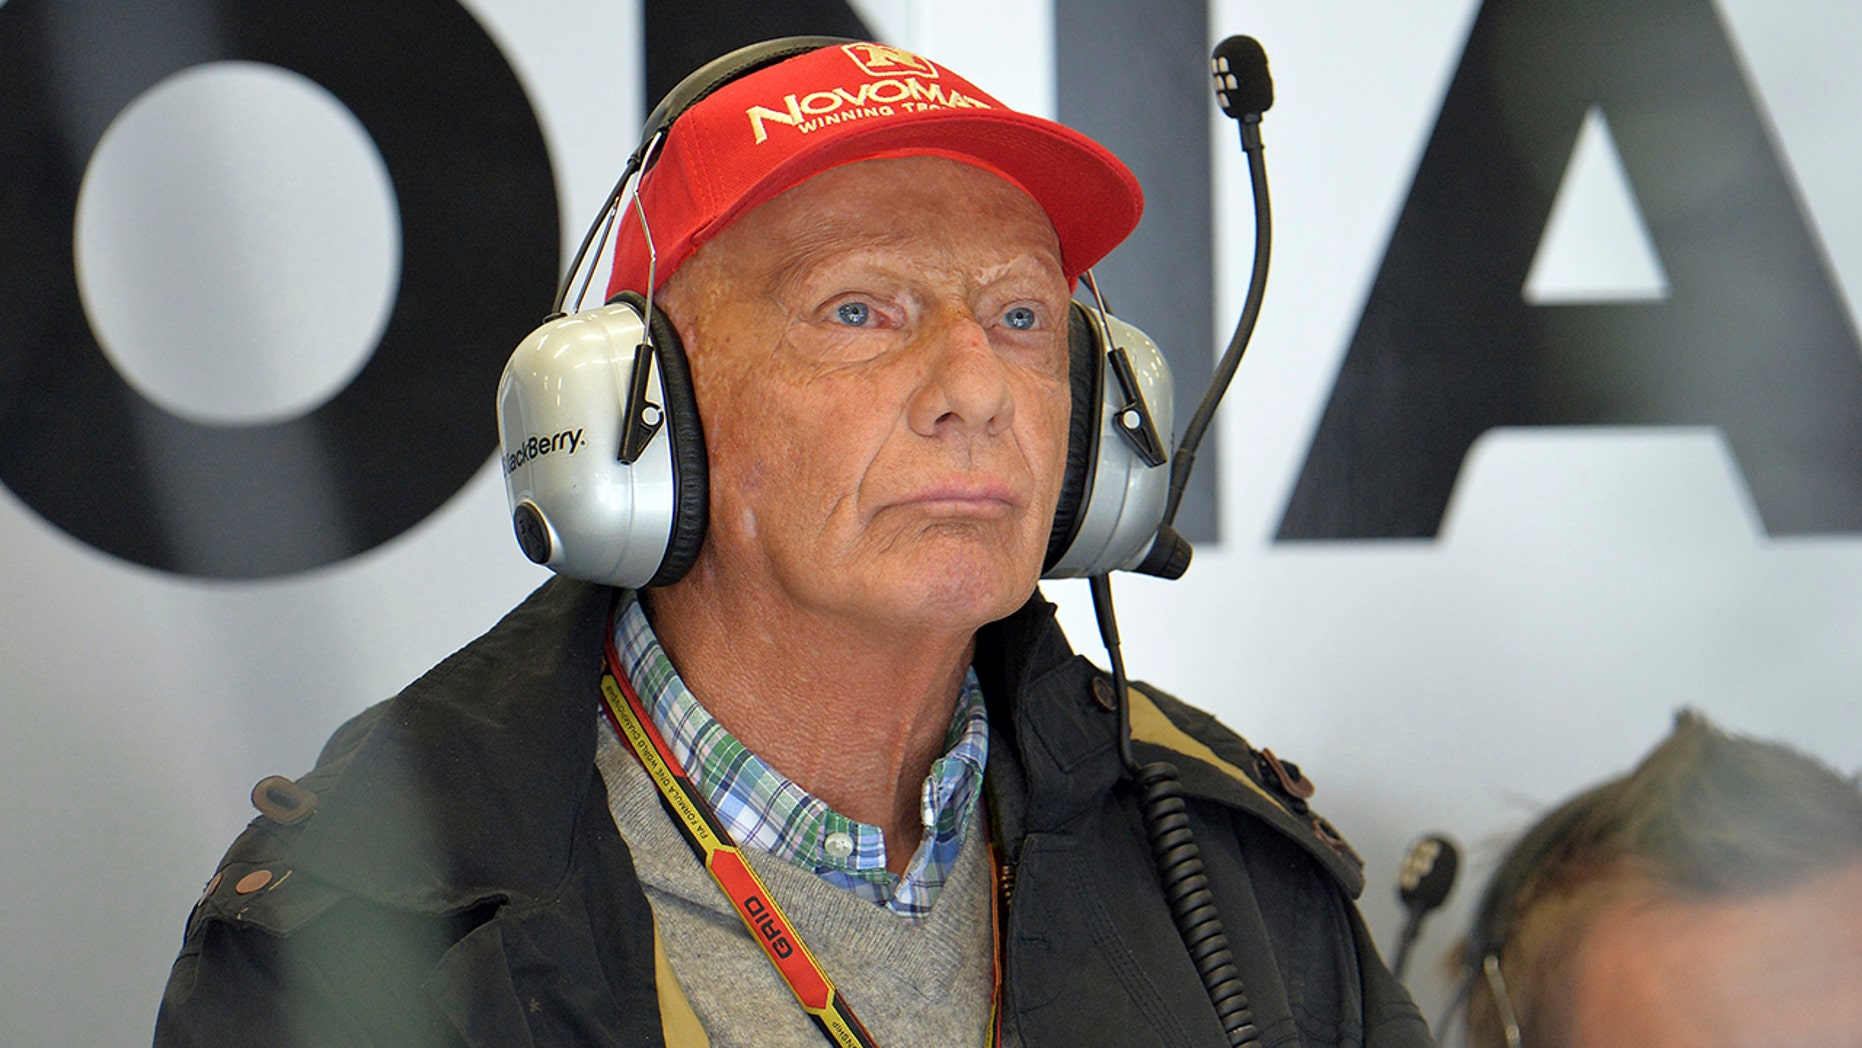 """FILE - In this Friday, June 20, 2014 photo former three-time F1 World champion Niki Lauda from Austria attends the second training session at the race track in Spielberg, Austria. Three-time Formula One world champion Niki Lauda has undergone a lung transplant. The Vienna General Hospital says the operation was performed Thursday because of a """"serious lung illness."""" It didn't give more specific details in a brief statement and said the 69-year-old Austrian's family would make no public comment (AP Photo/Kerstin Joensson, file)"""